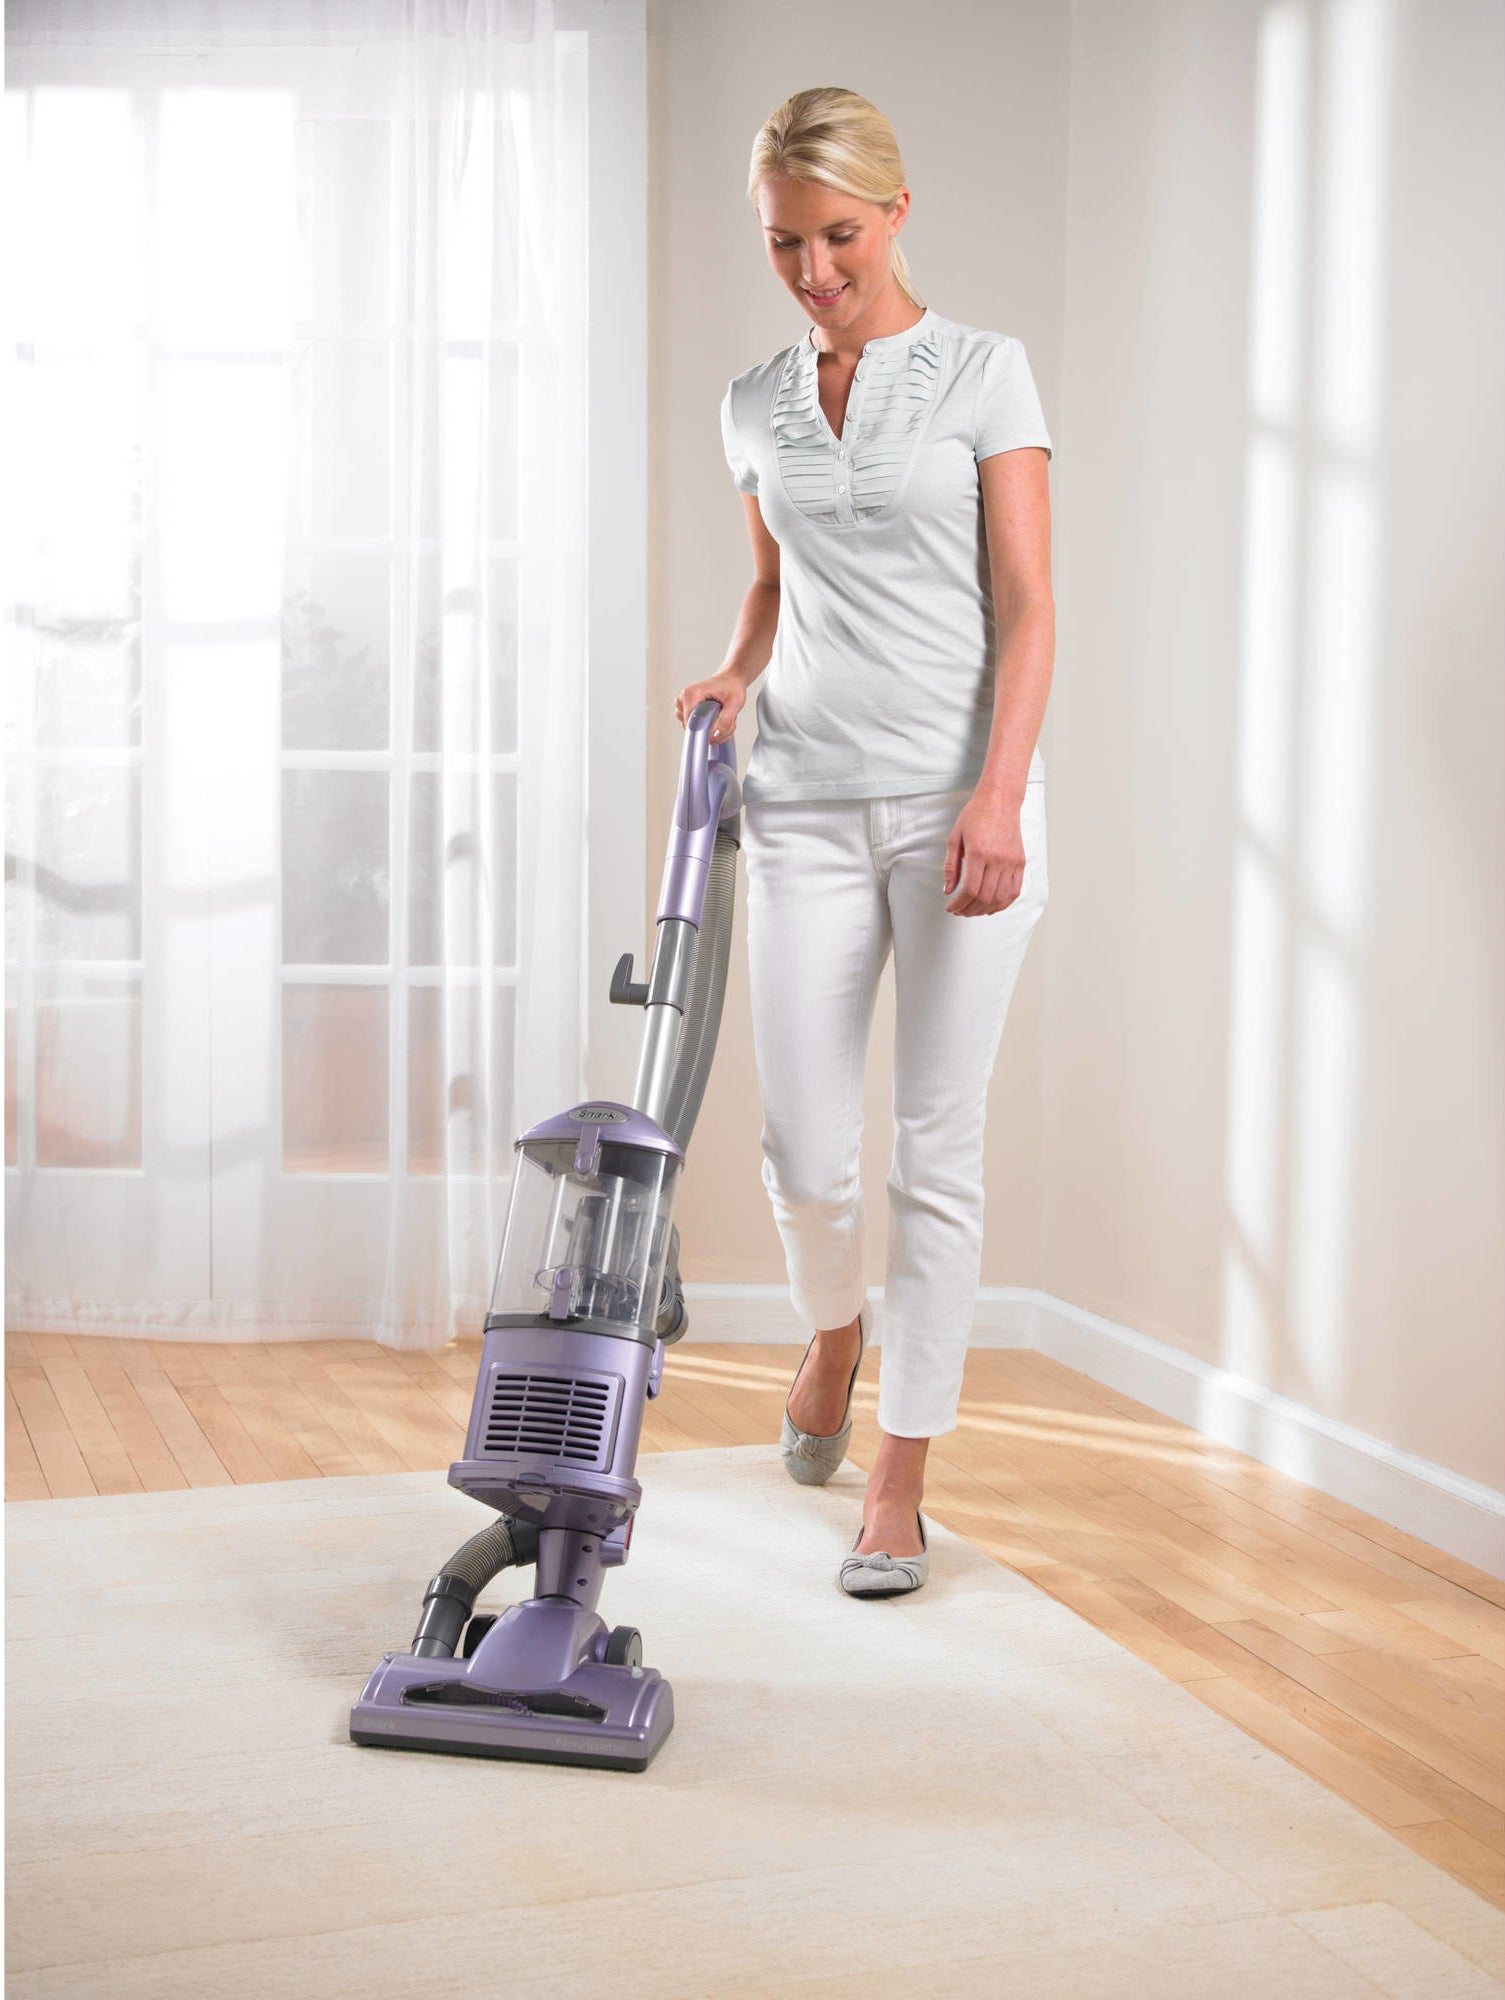 A model using the vacuum